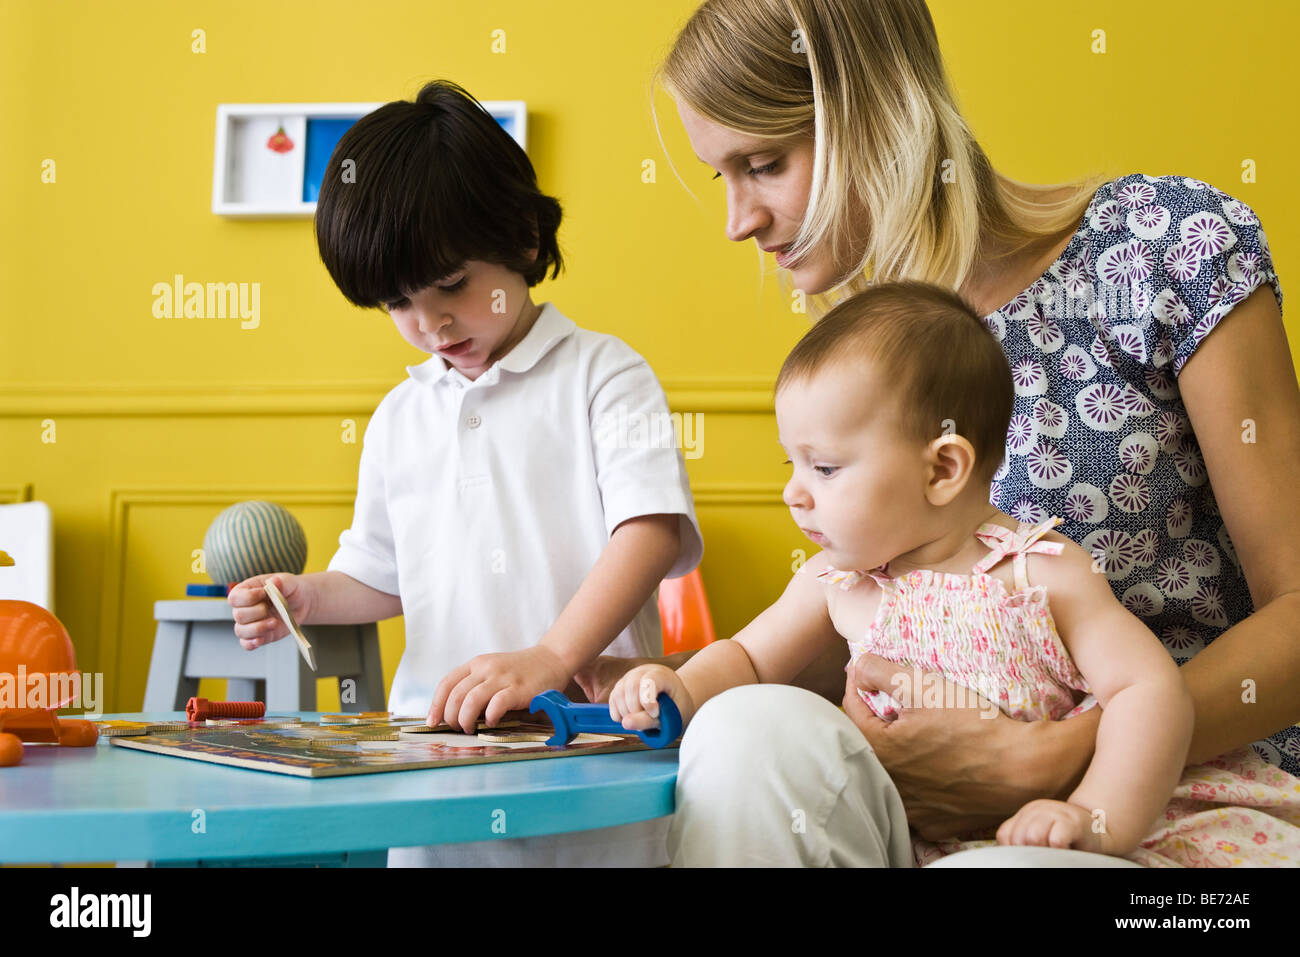 Little boy working jigsaw puzzle with mother and infant sister Stock Photo